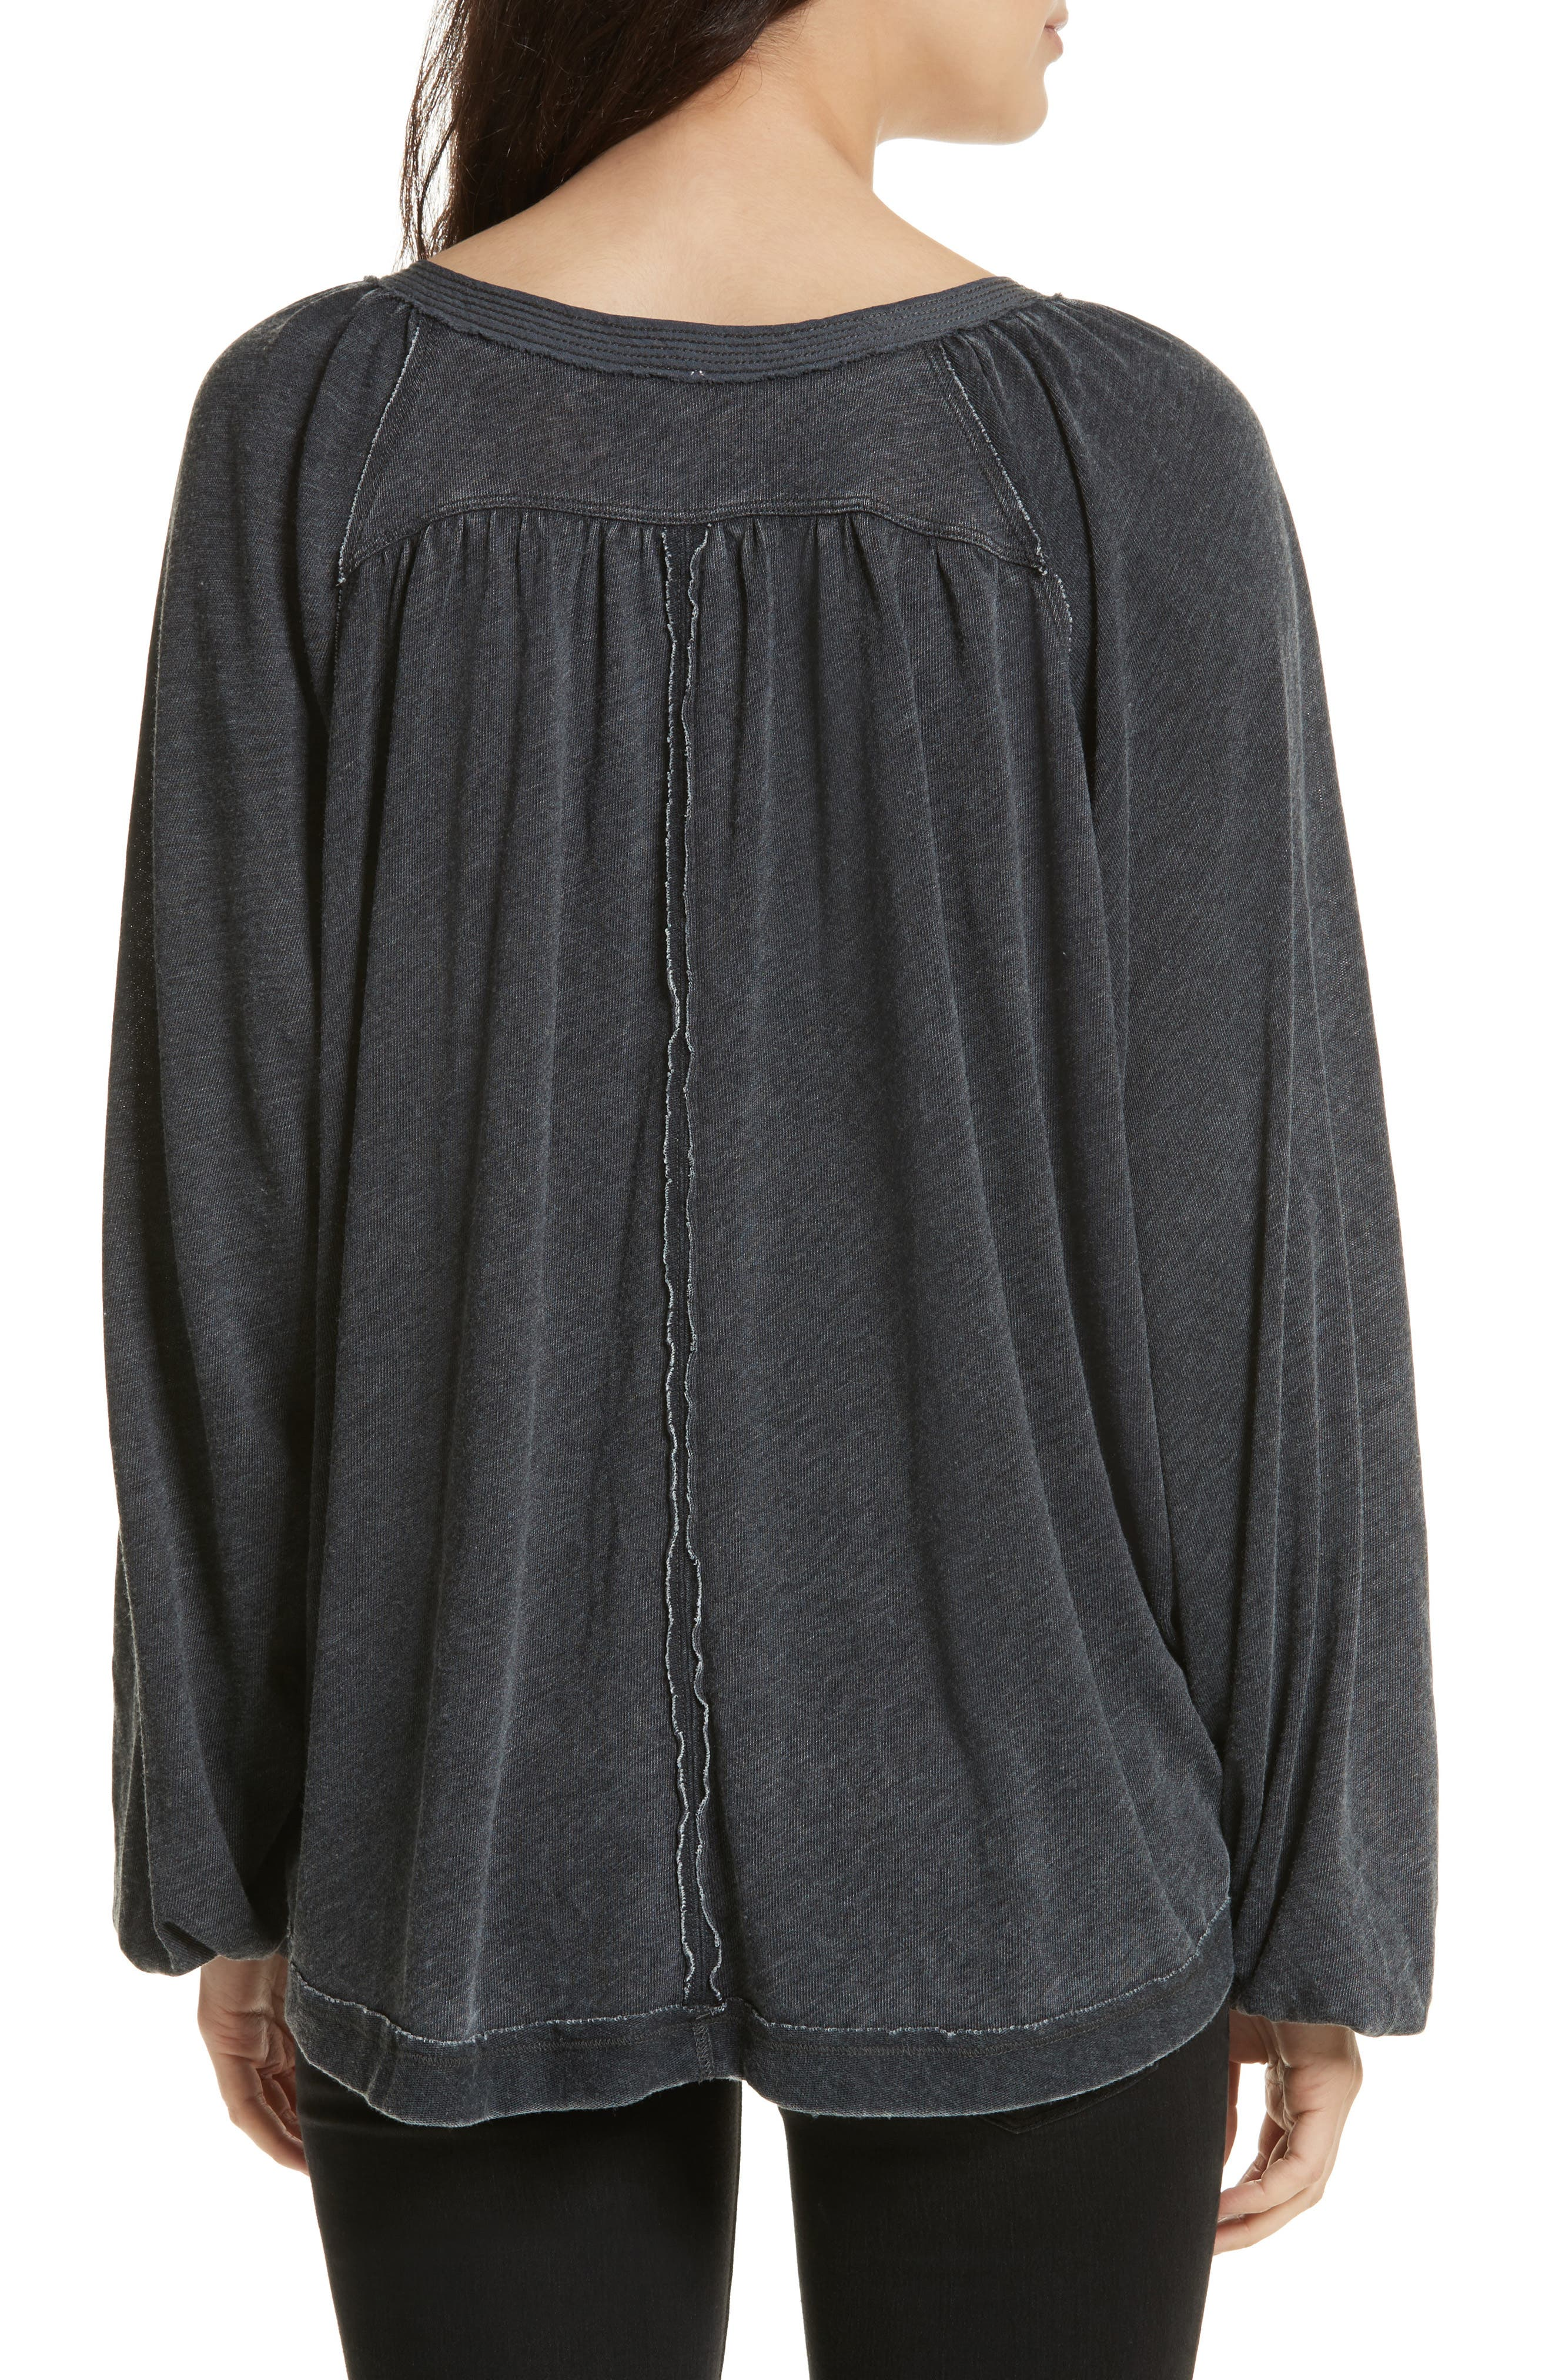 FREE PEOPLE, Acadia Henley Top, Alternate thumbnail 2, color, 001